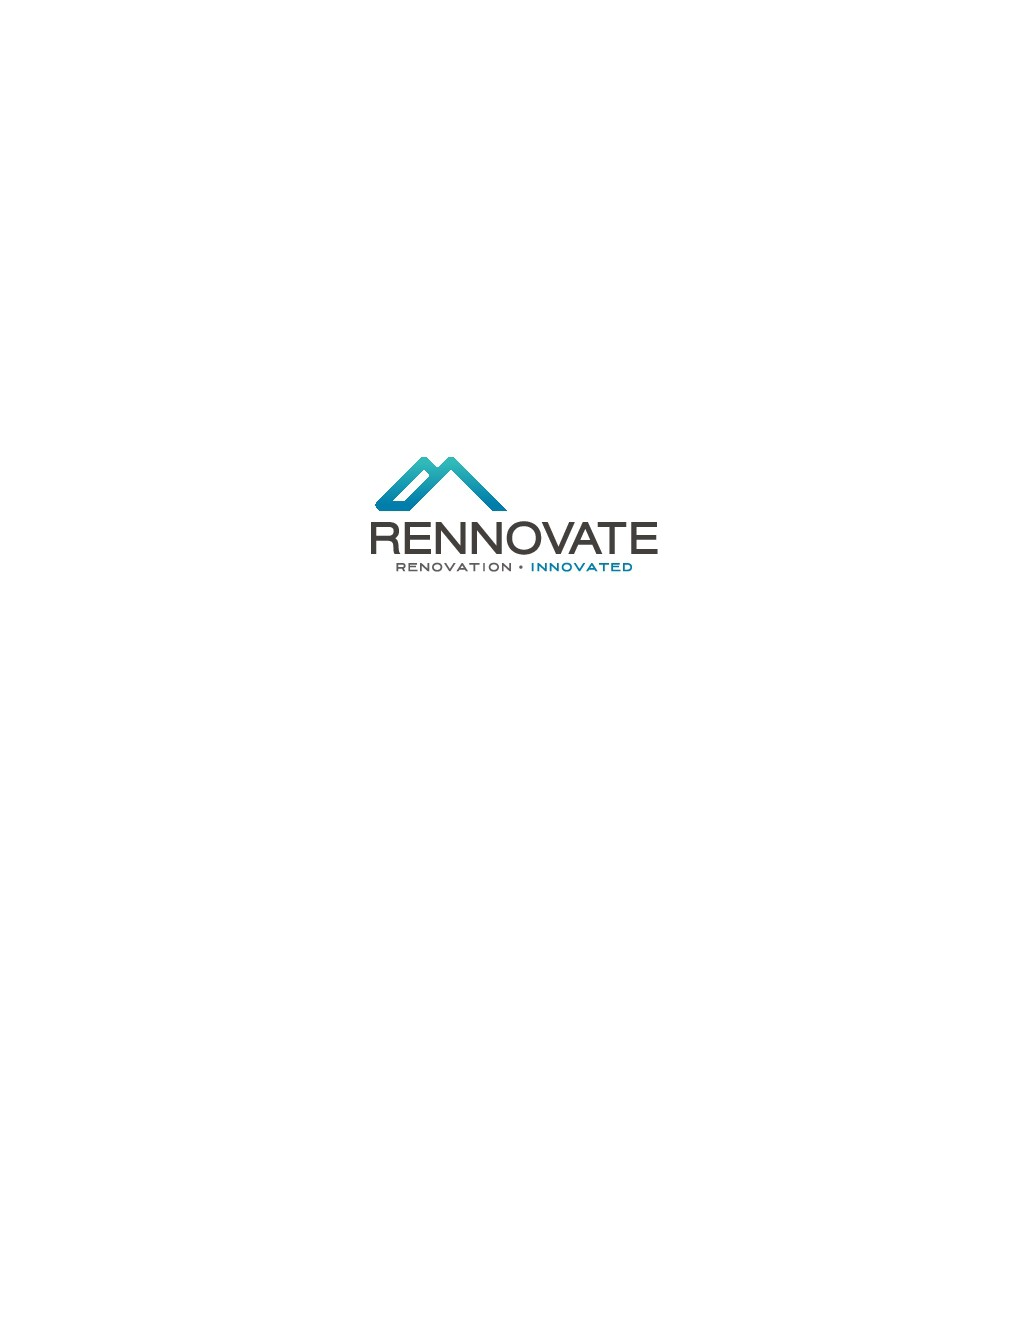 Rennovate Logo Design -- Start with Logo Design, then Move to more, more and more work!